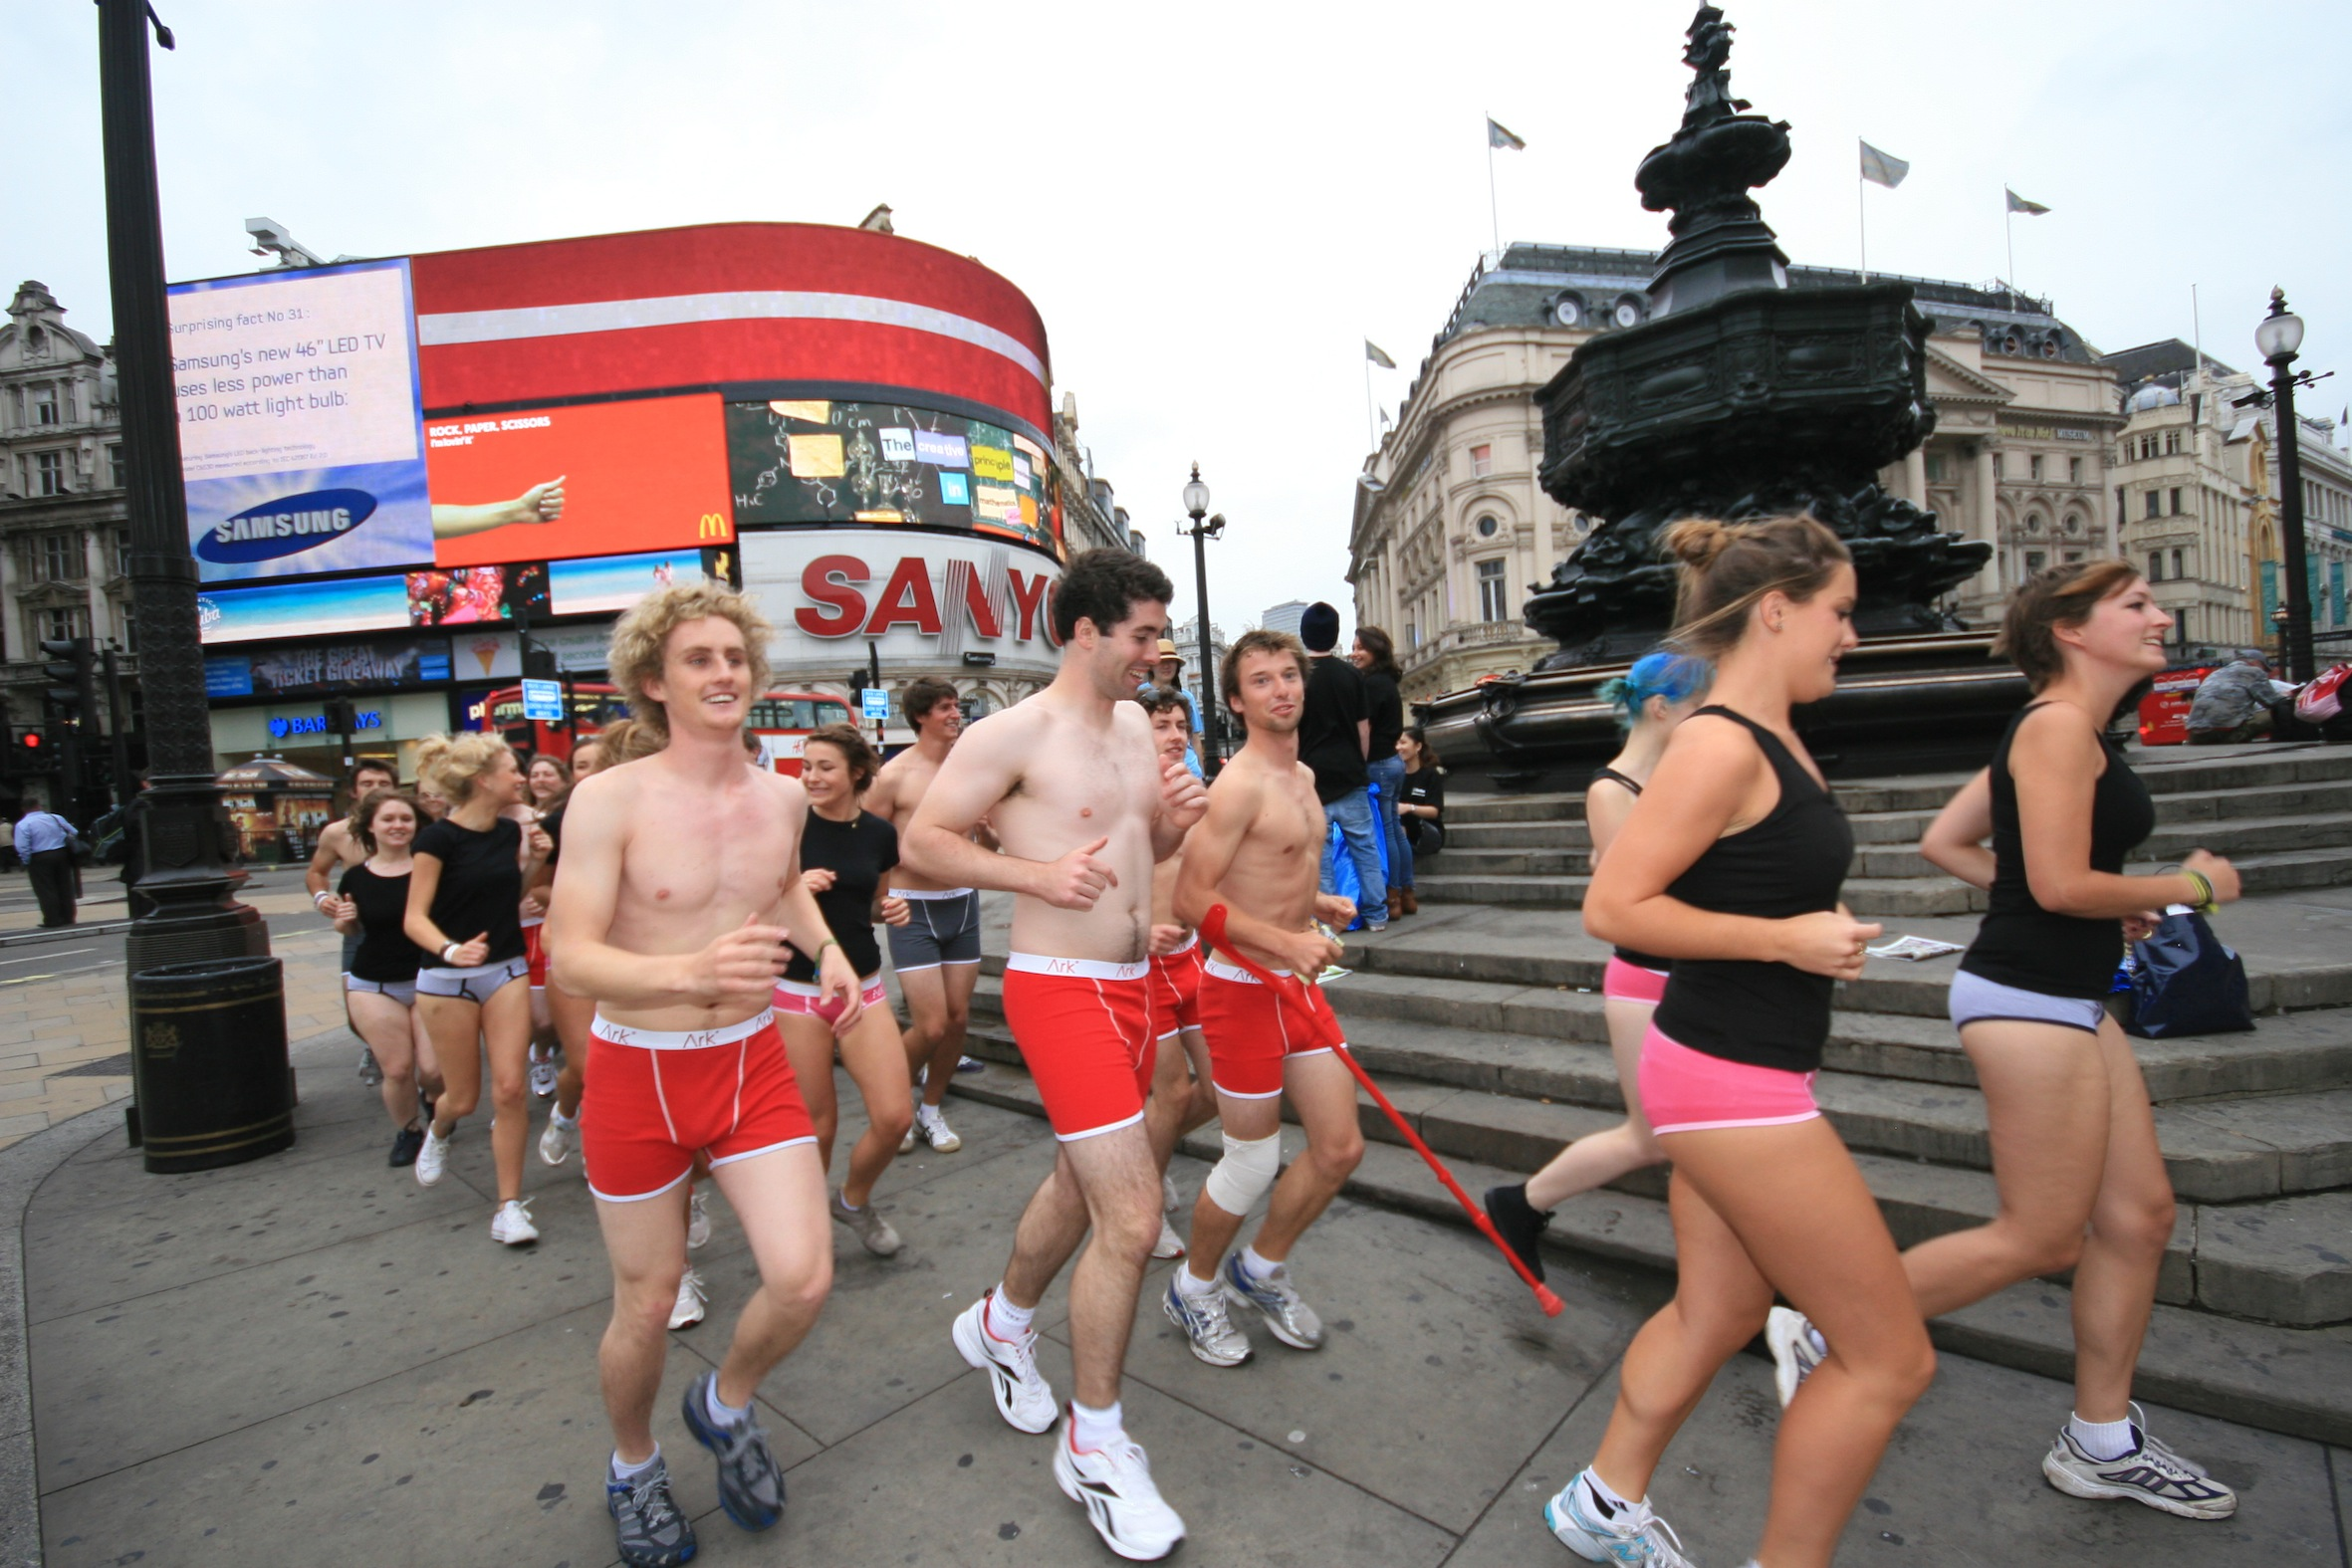 50 strip in central London for new kindness movement